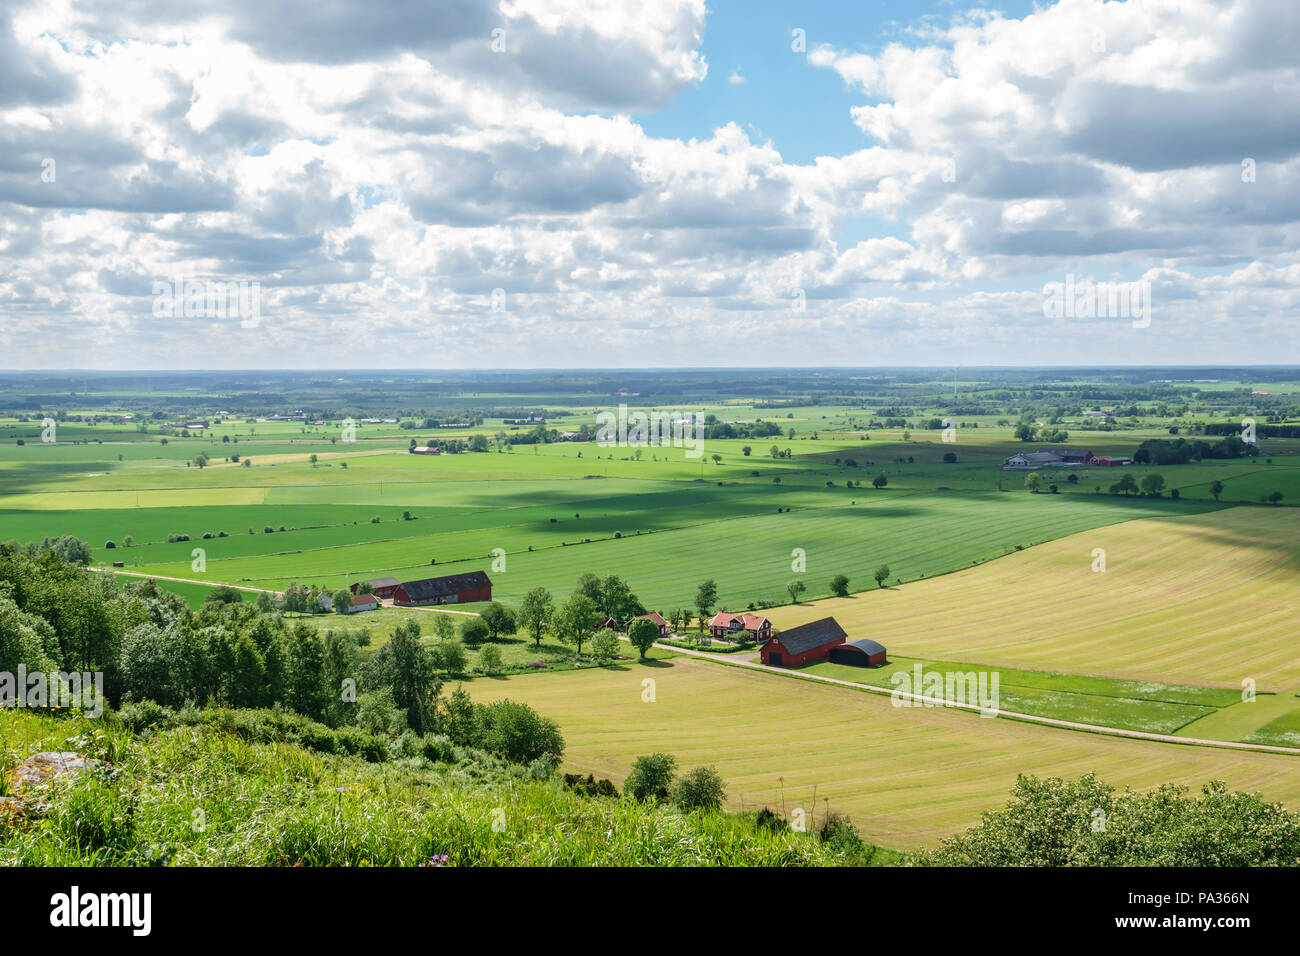 Rural country landscape view with a farm - Stock Image